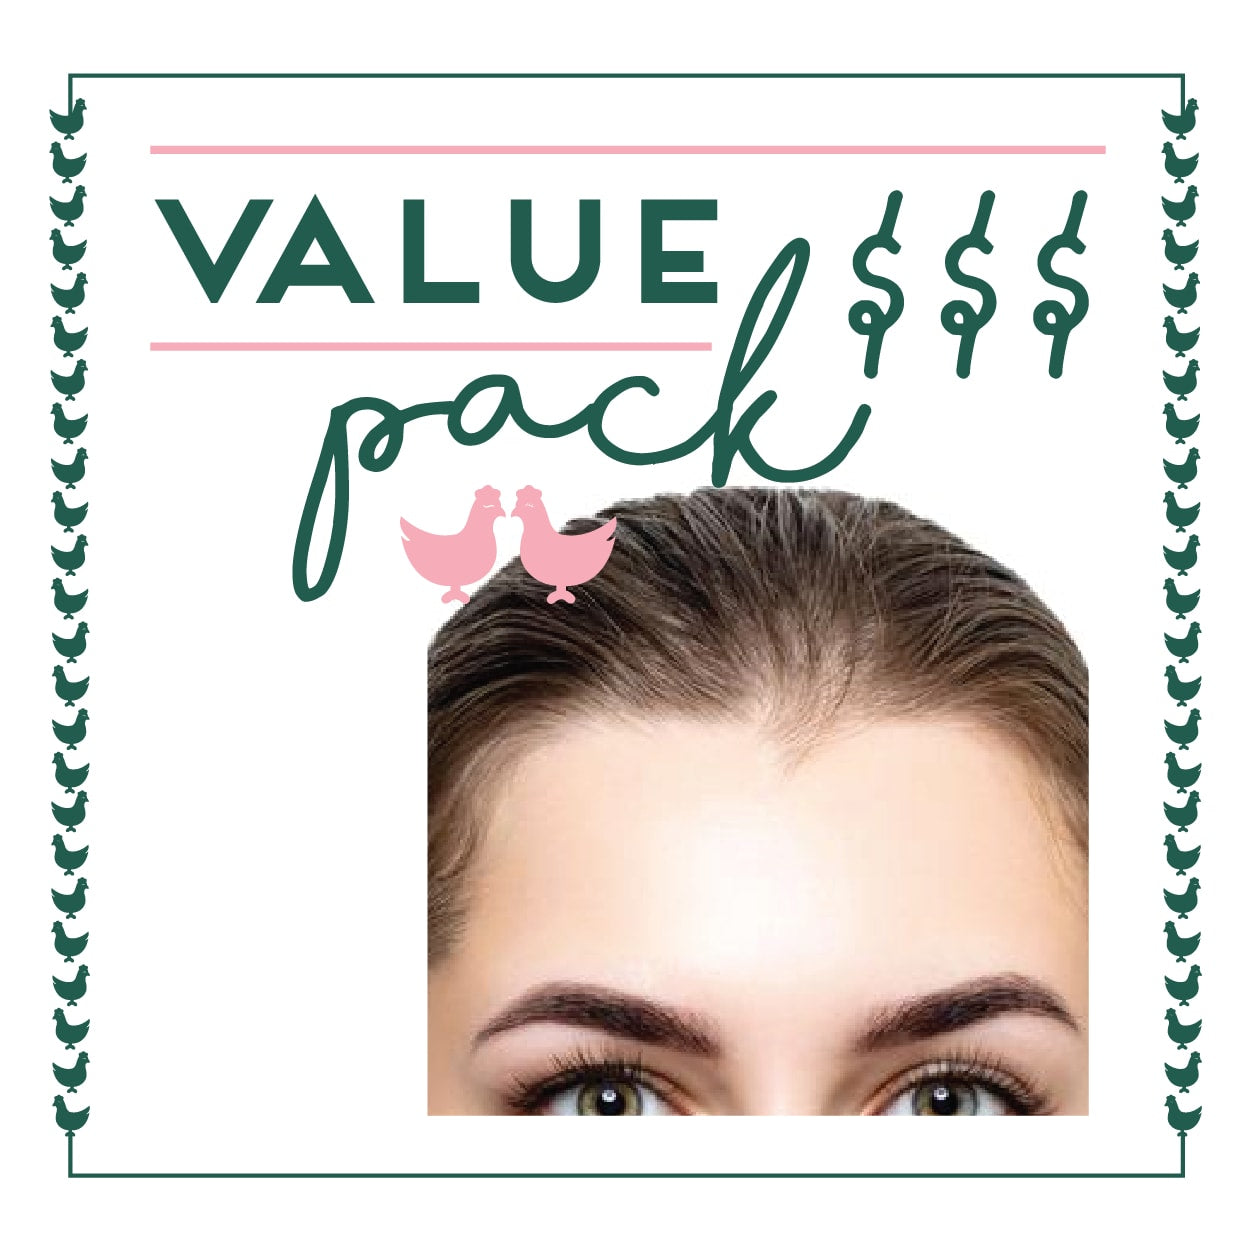 Forehead Laser - 6 Session Value Pack